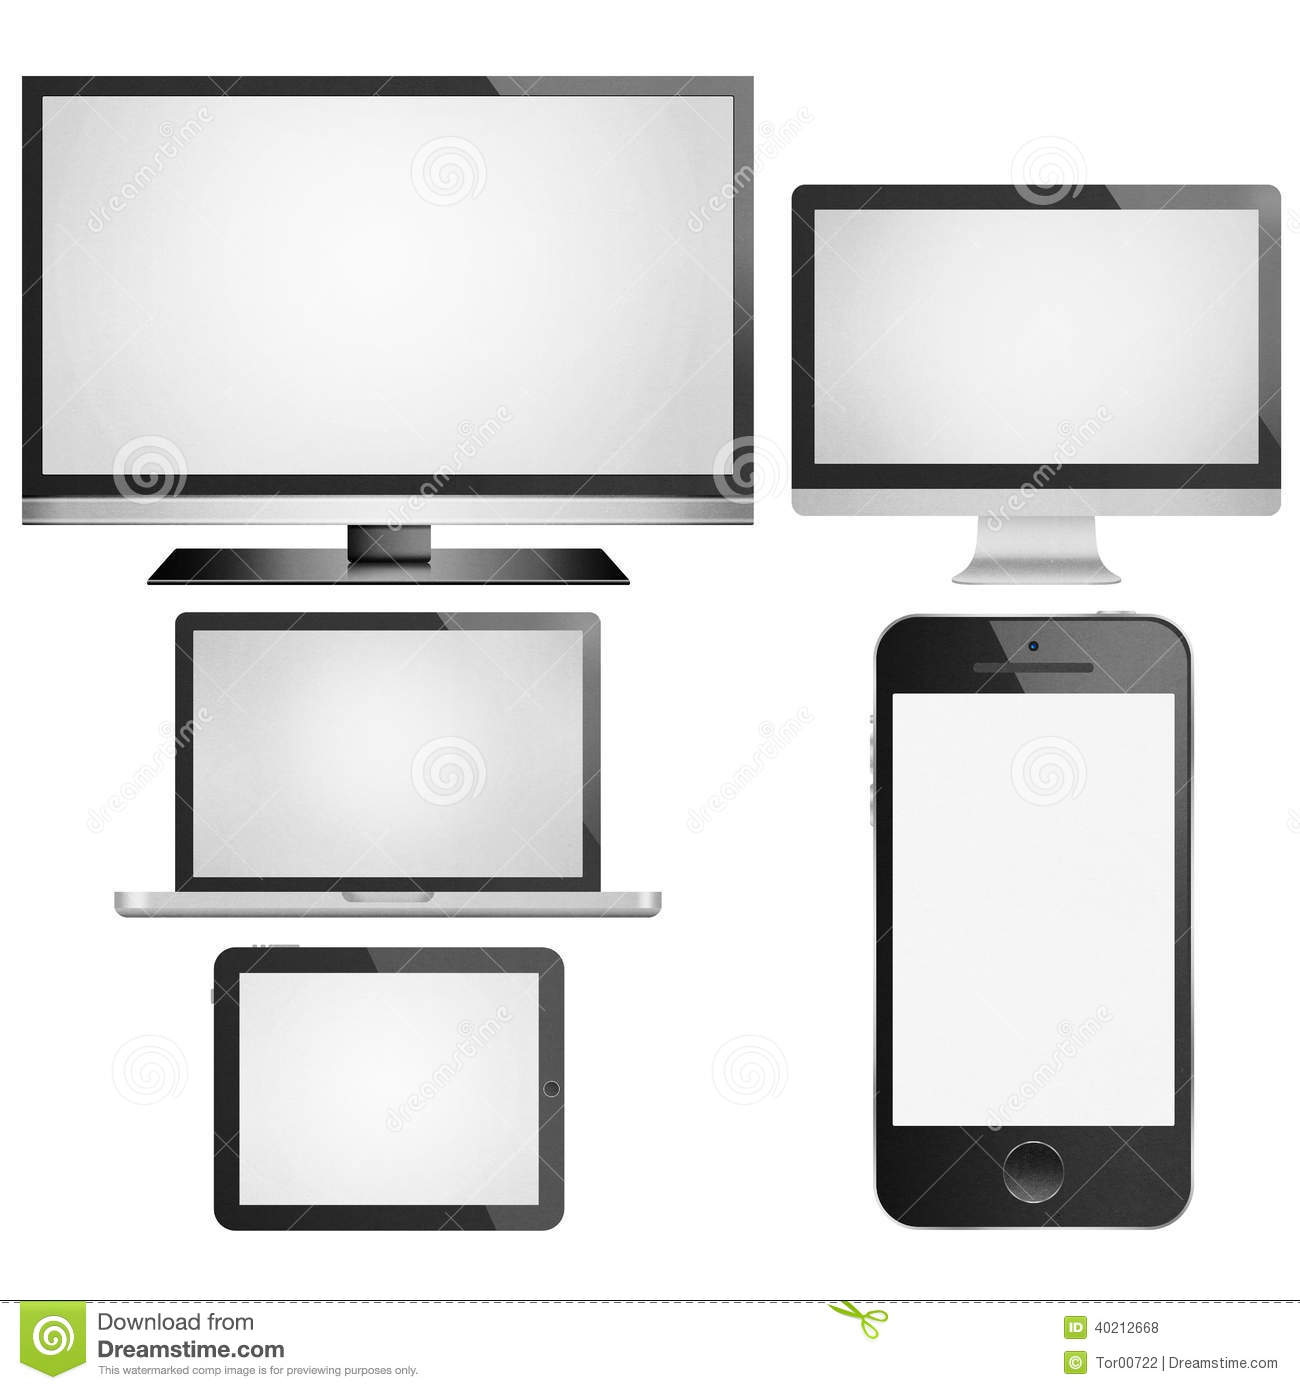 mobile tv essay